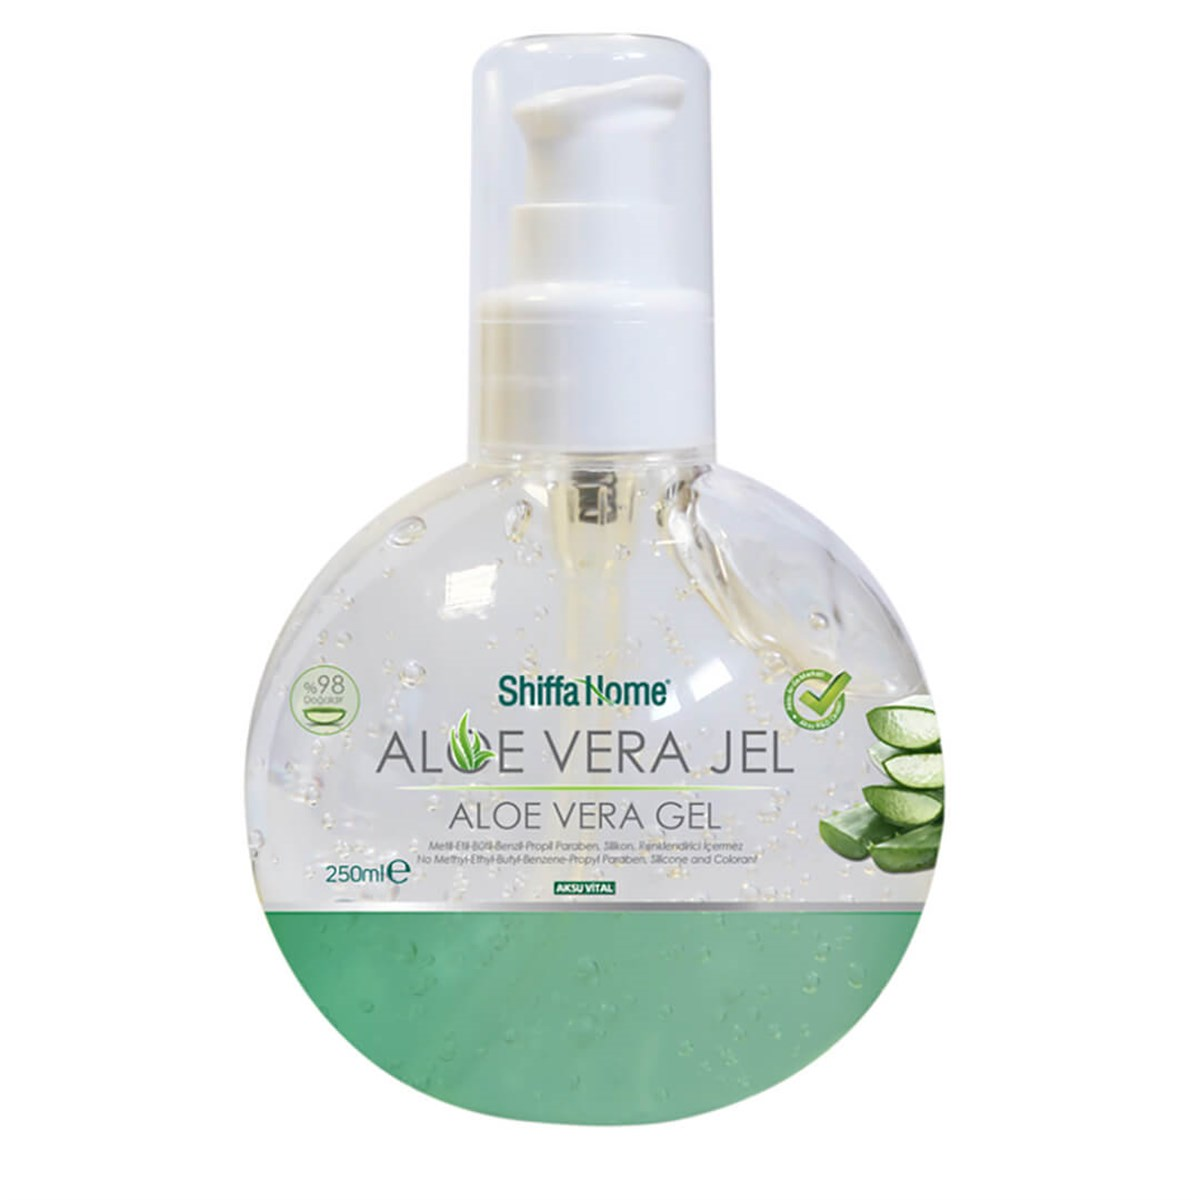 Shiffa Home Aloe Vera Jel 250 ml